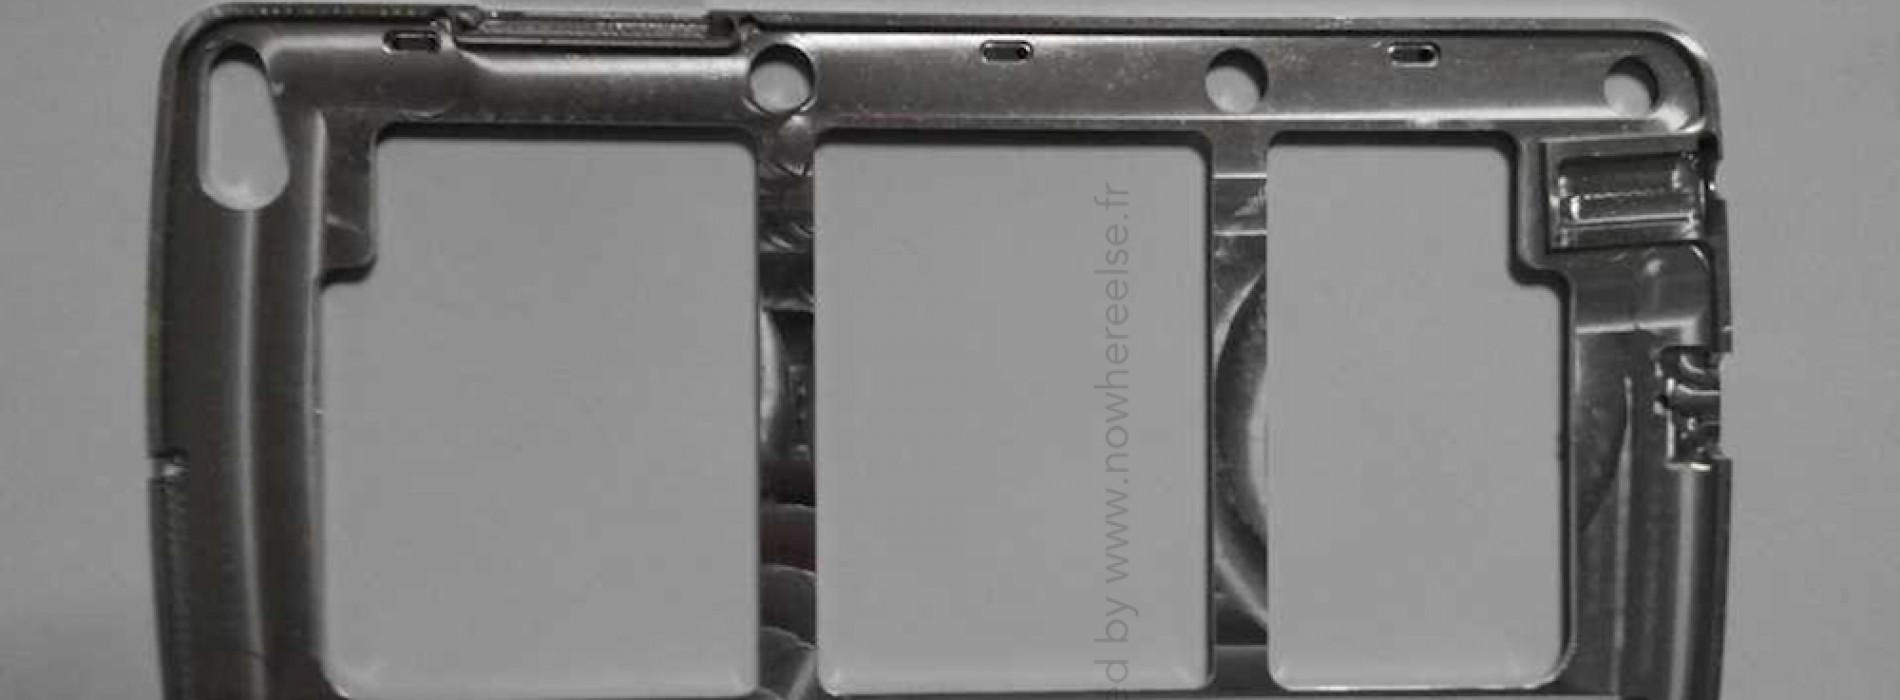 Leaked Samsung chassis could belong to Galaxy S5 or Galaxy F